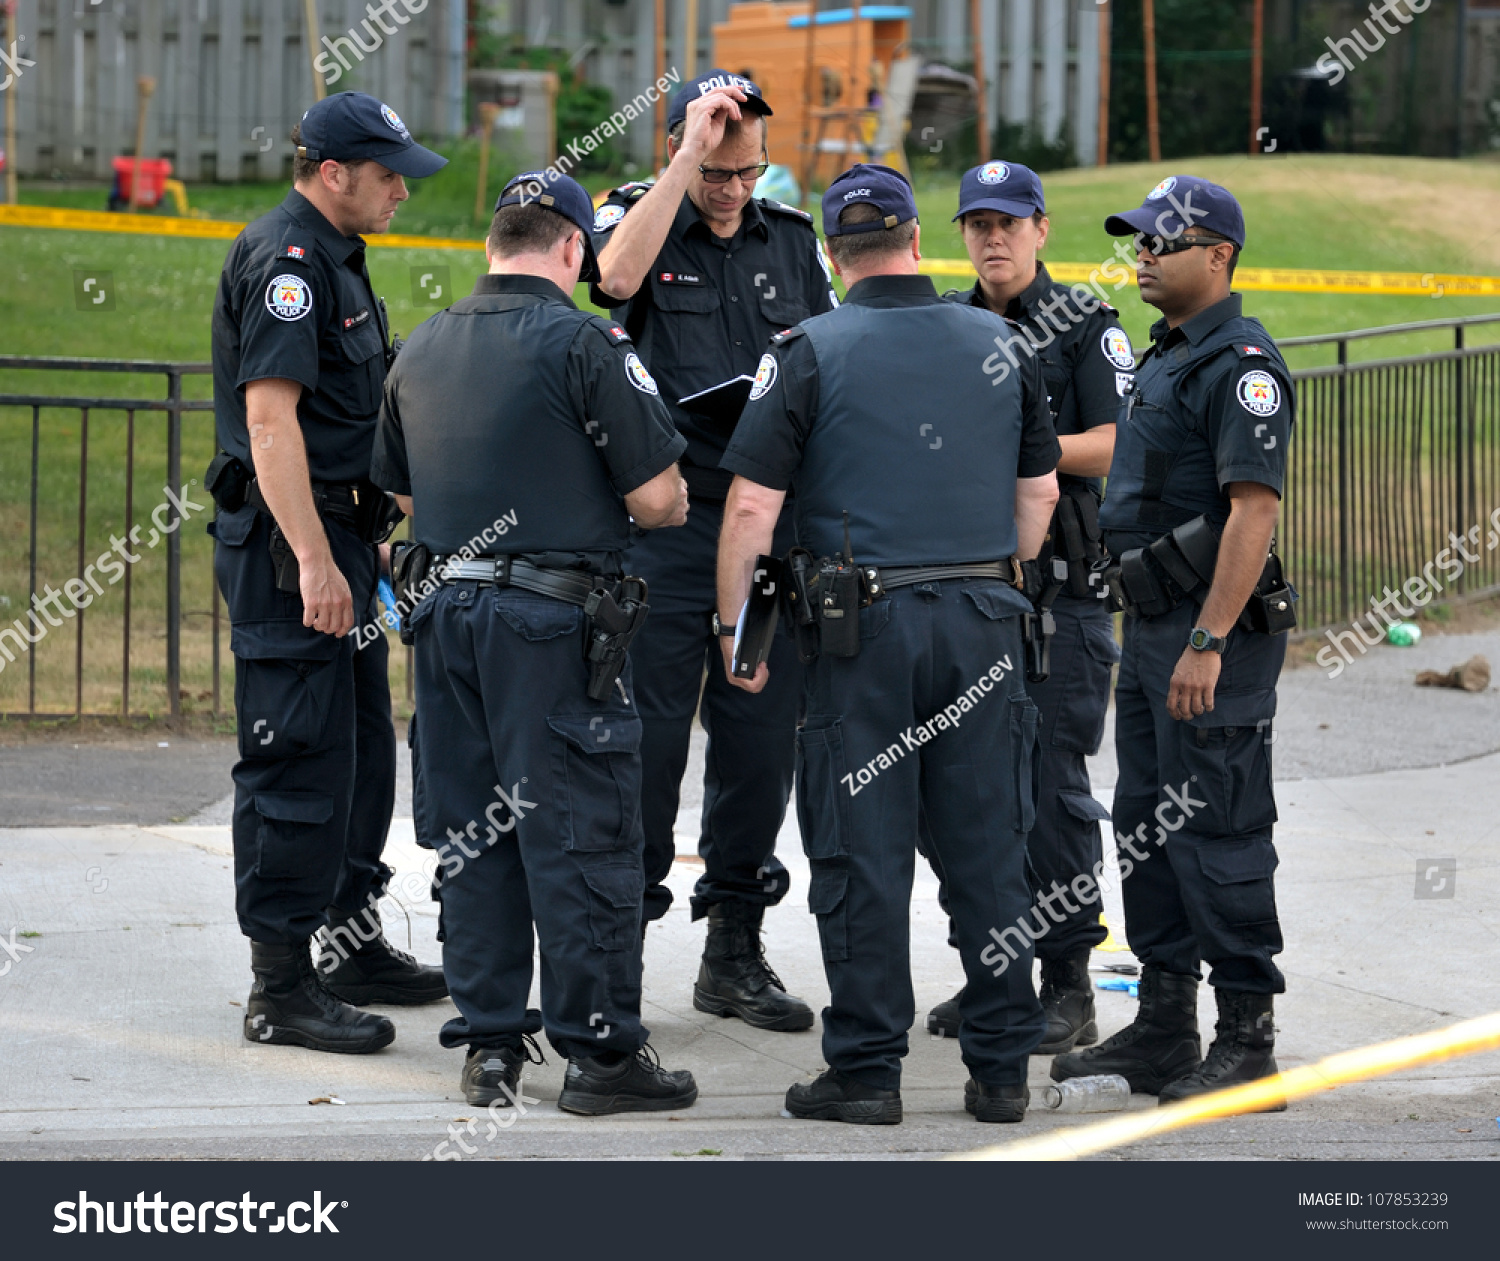 Torontojuly 17 Group Police Officers Crime Stock Photo